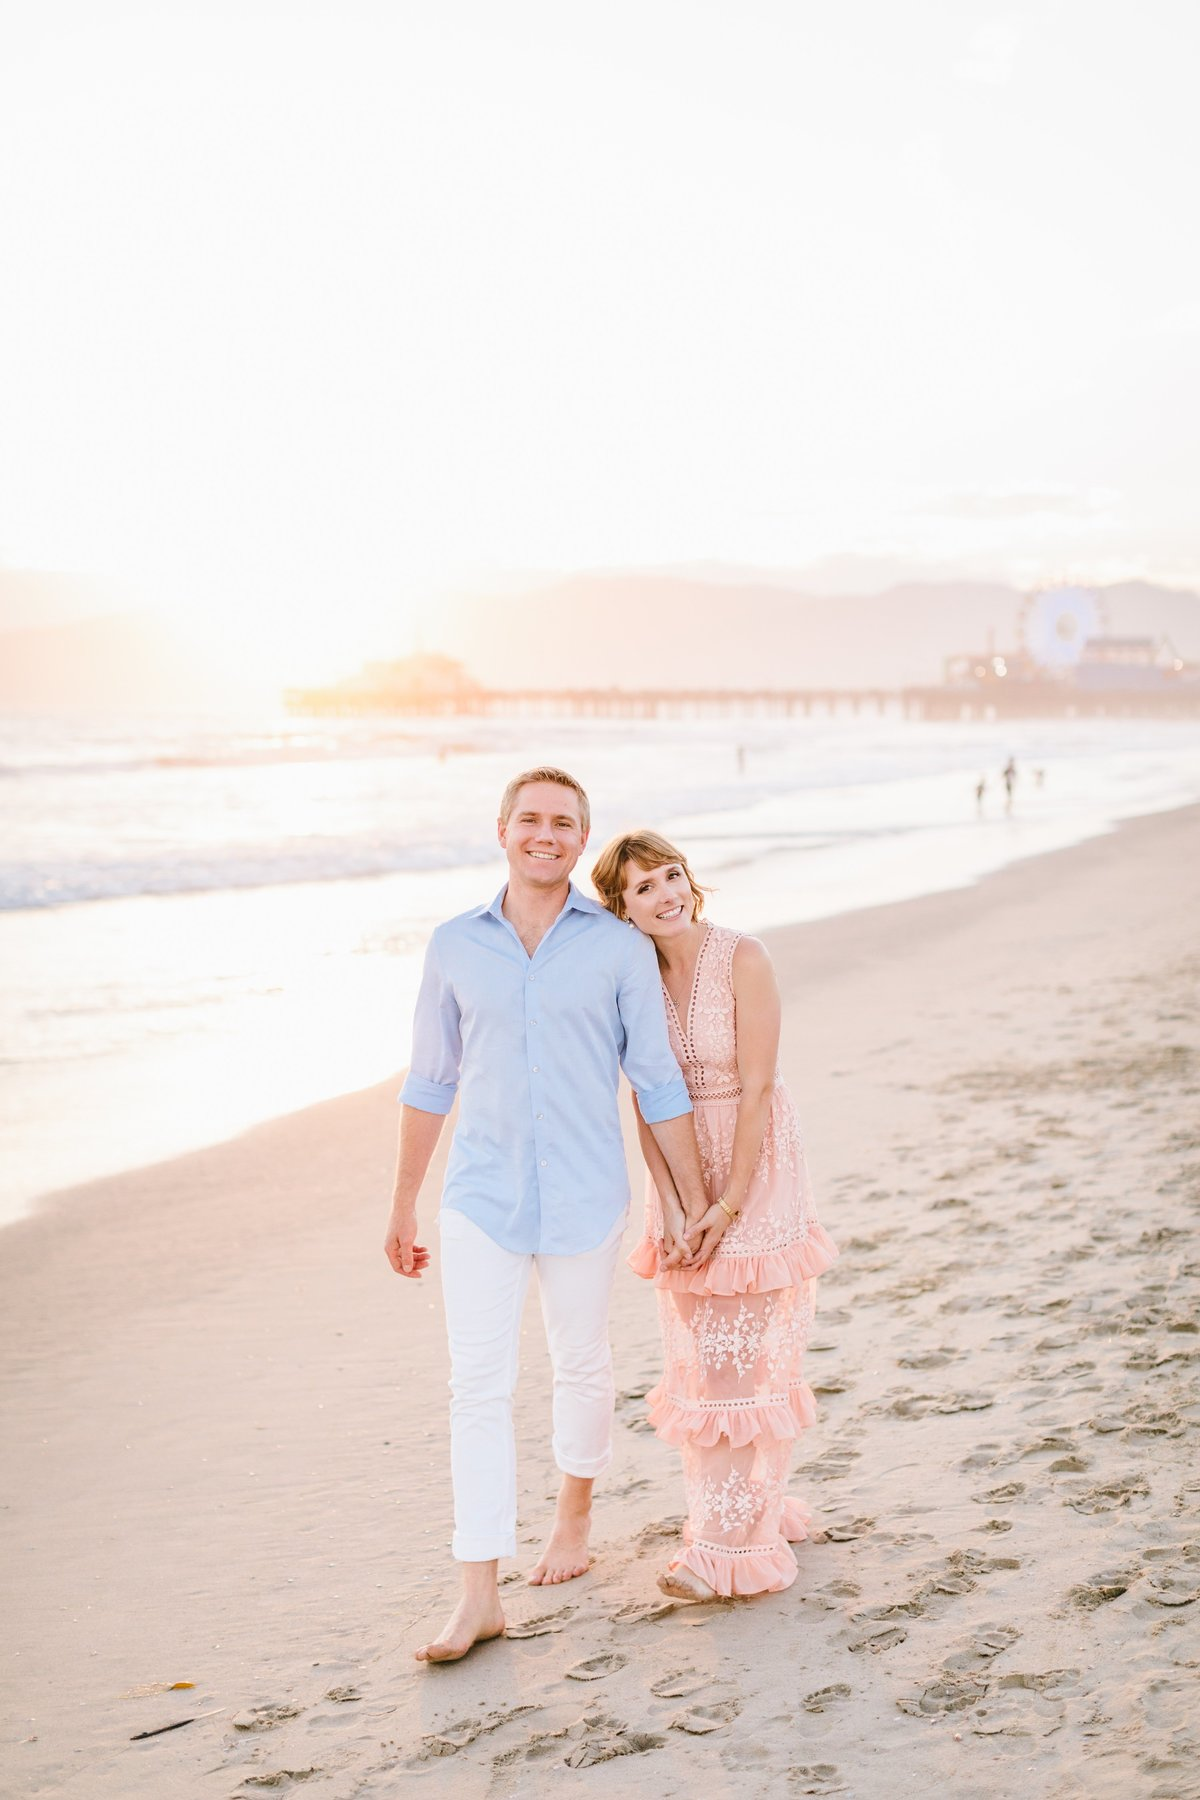 Best California Engagement Photographer-Jodee Debes Photography-199